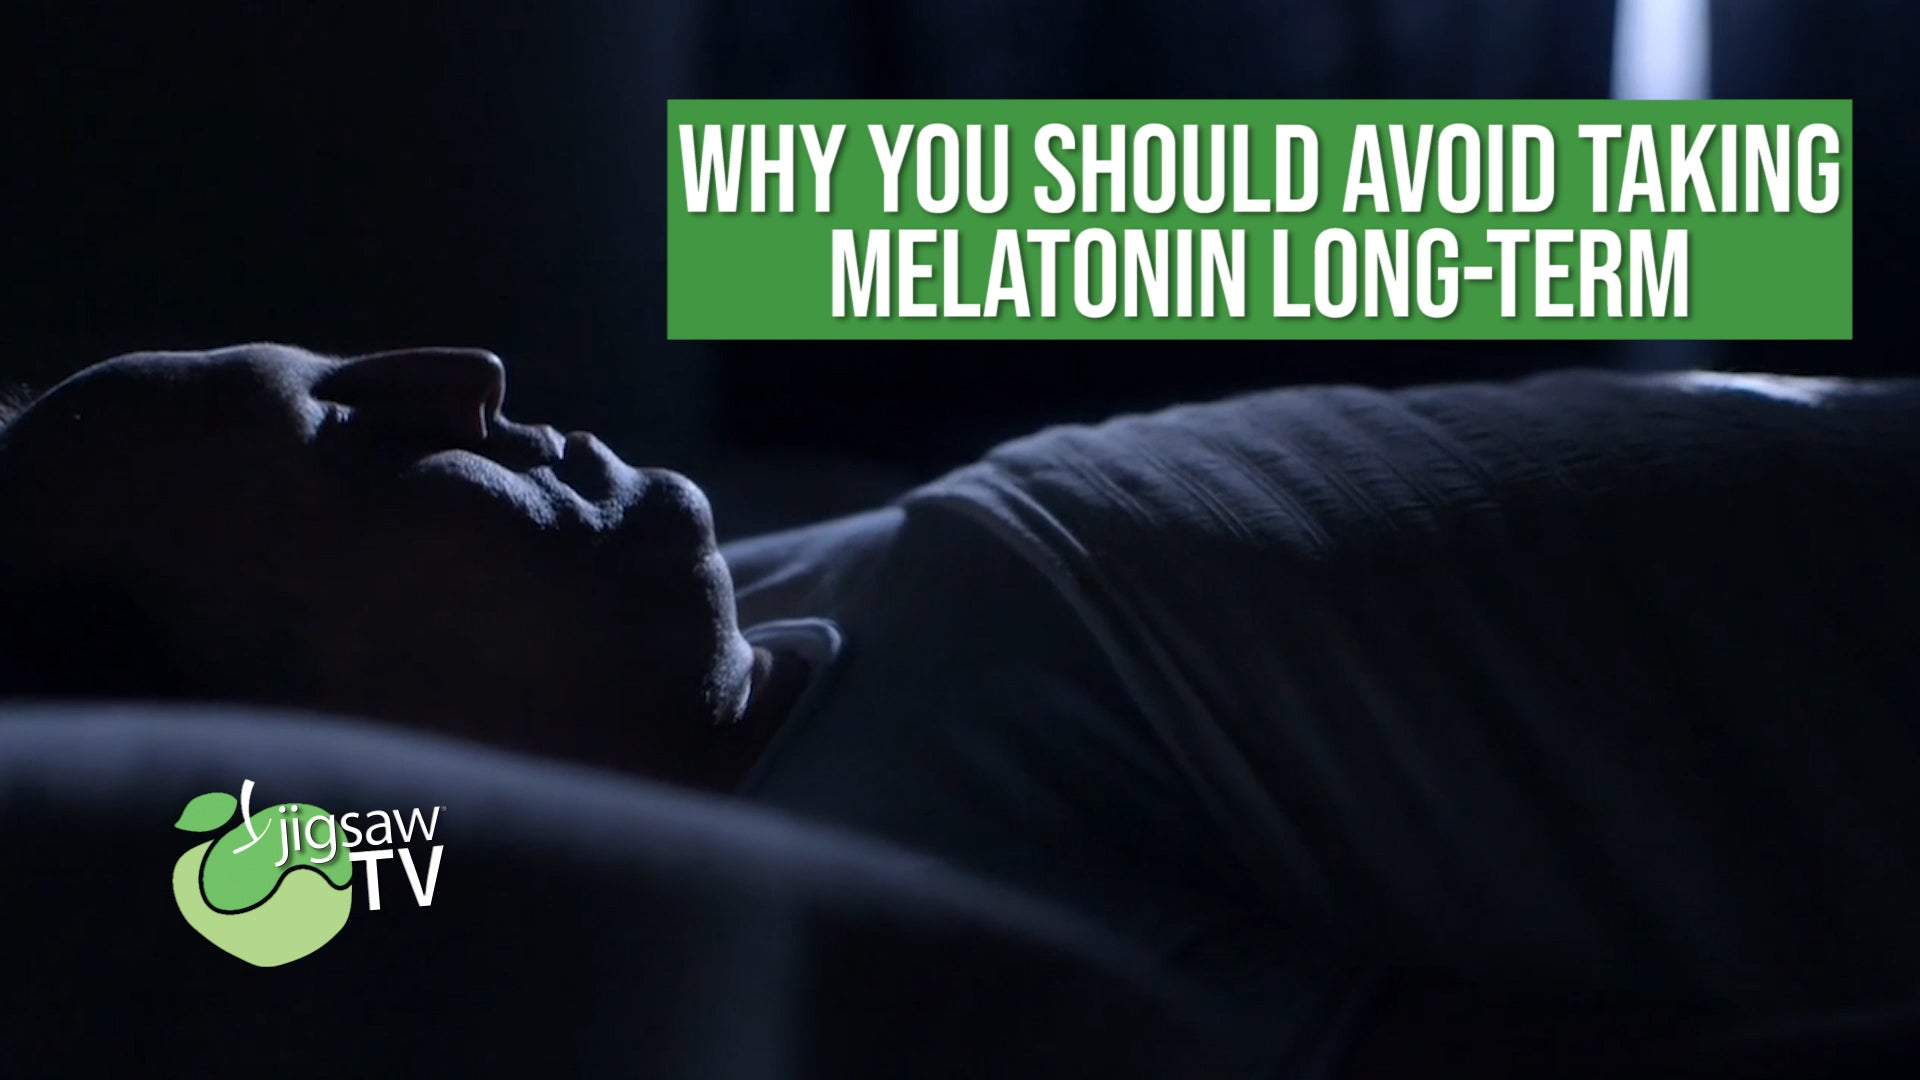 Why Should Avoid Taking Melatonin Long-Term | #ScienceSaturday